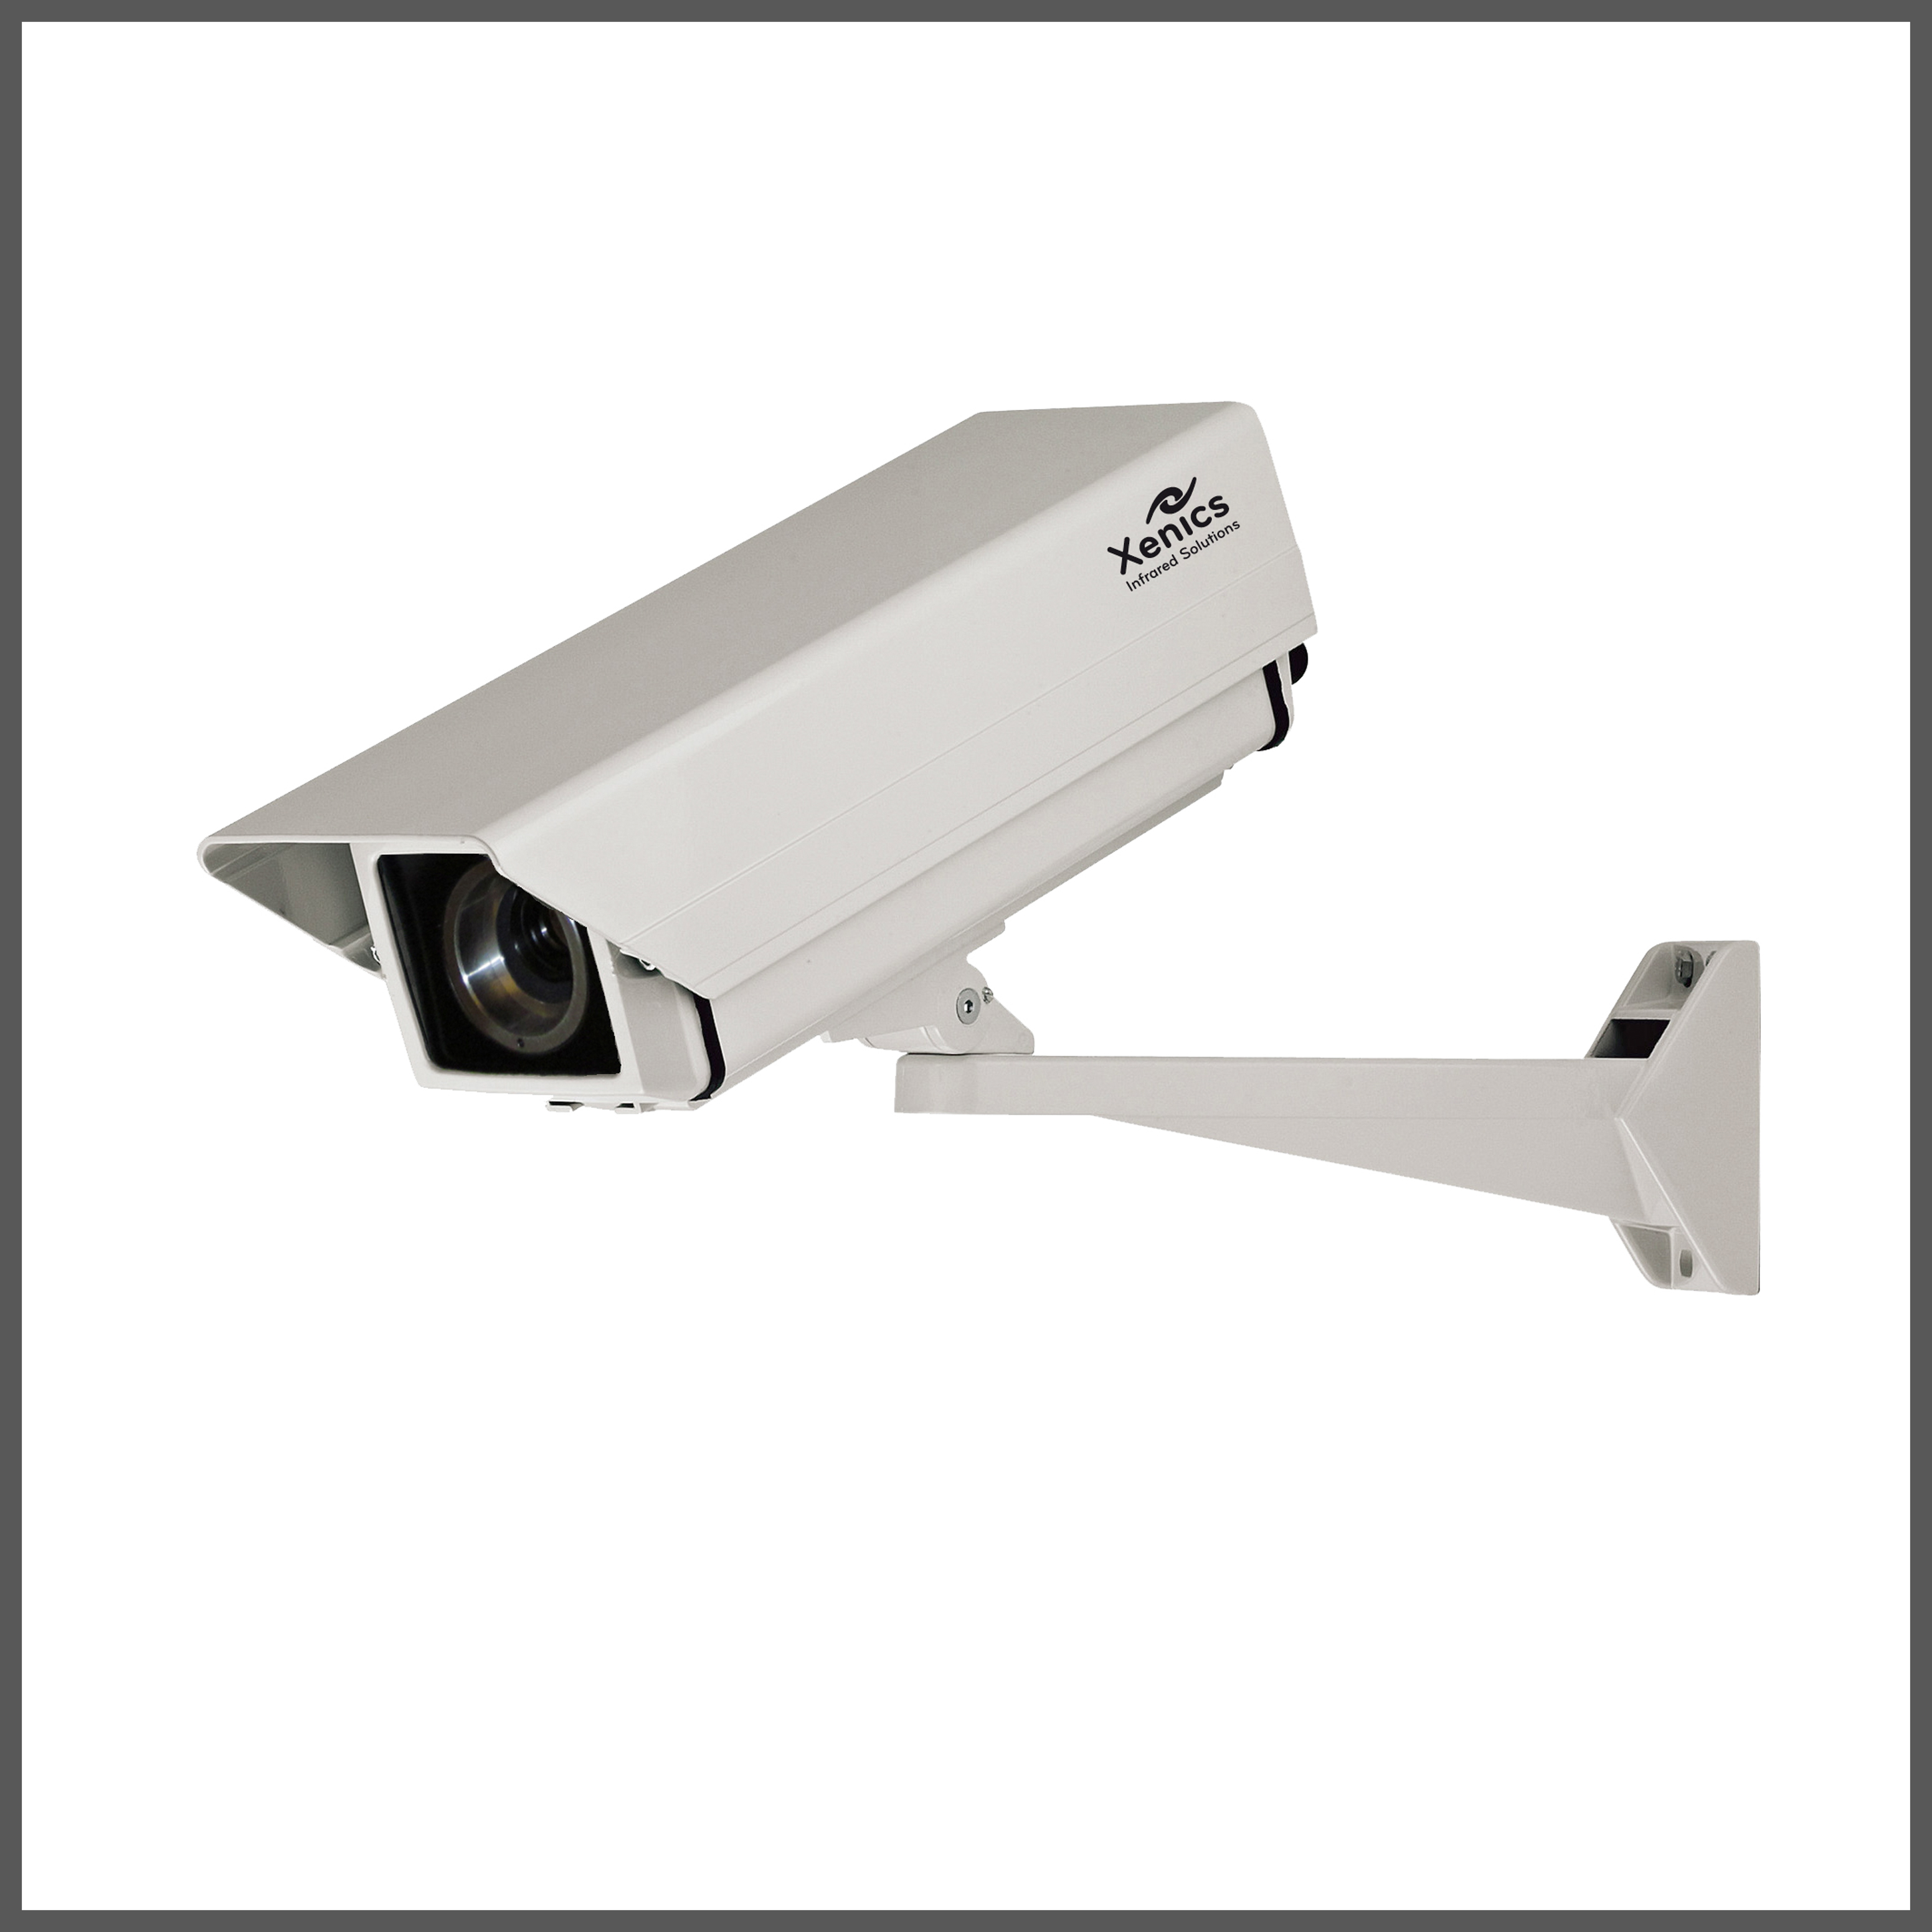 Security Camera Clipart - Cliparts.co